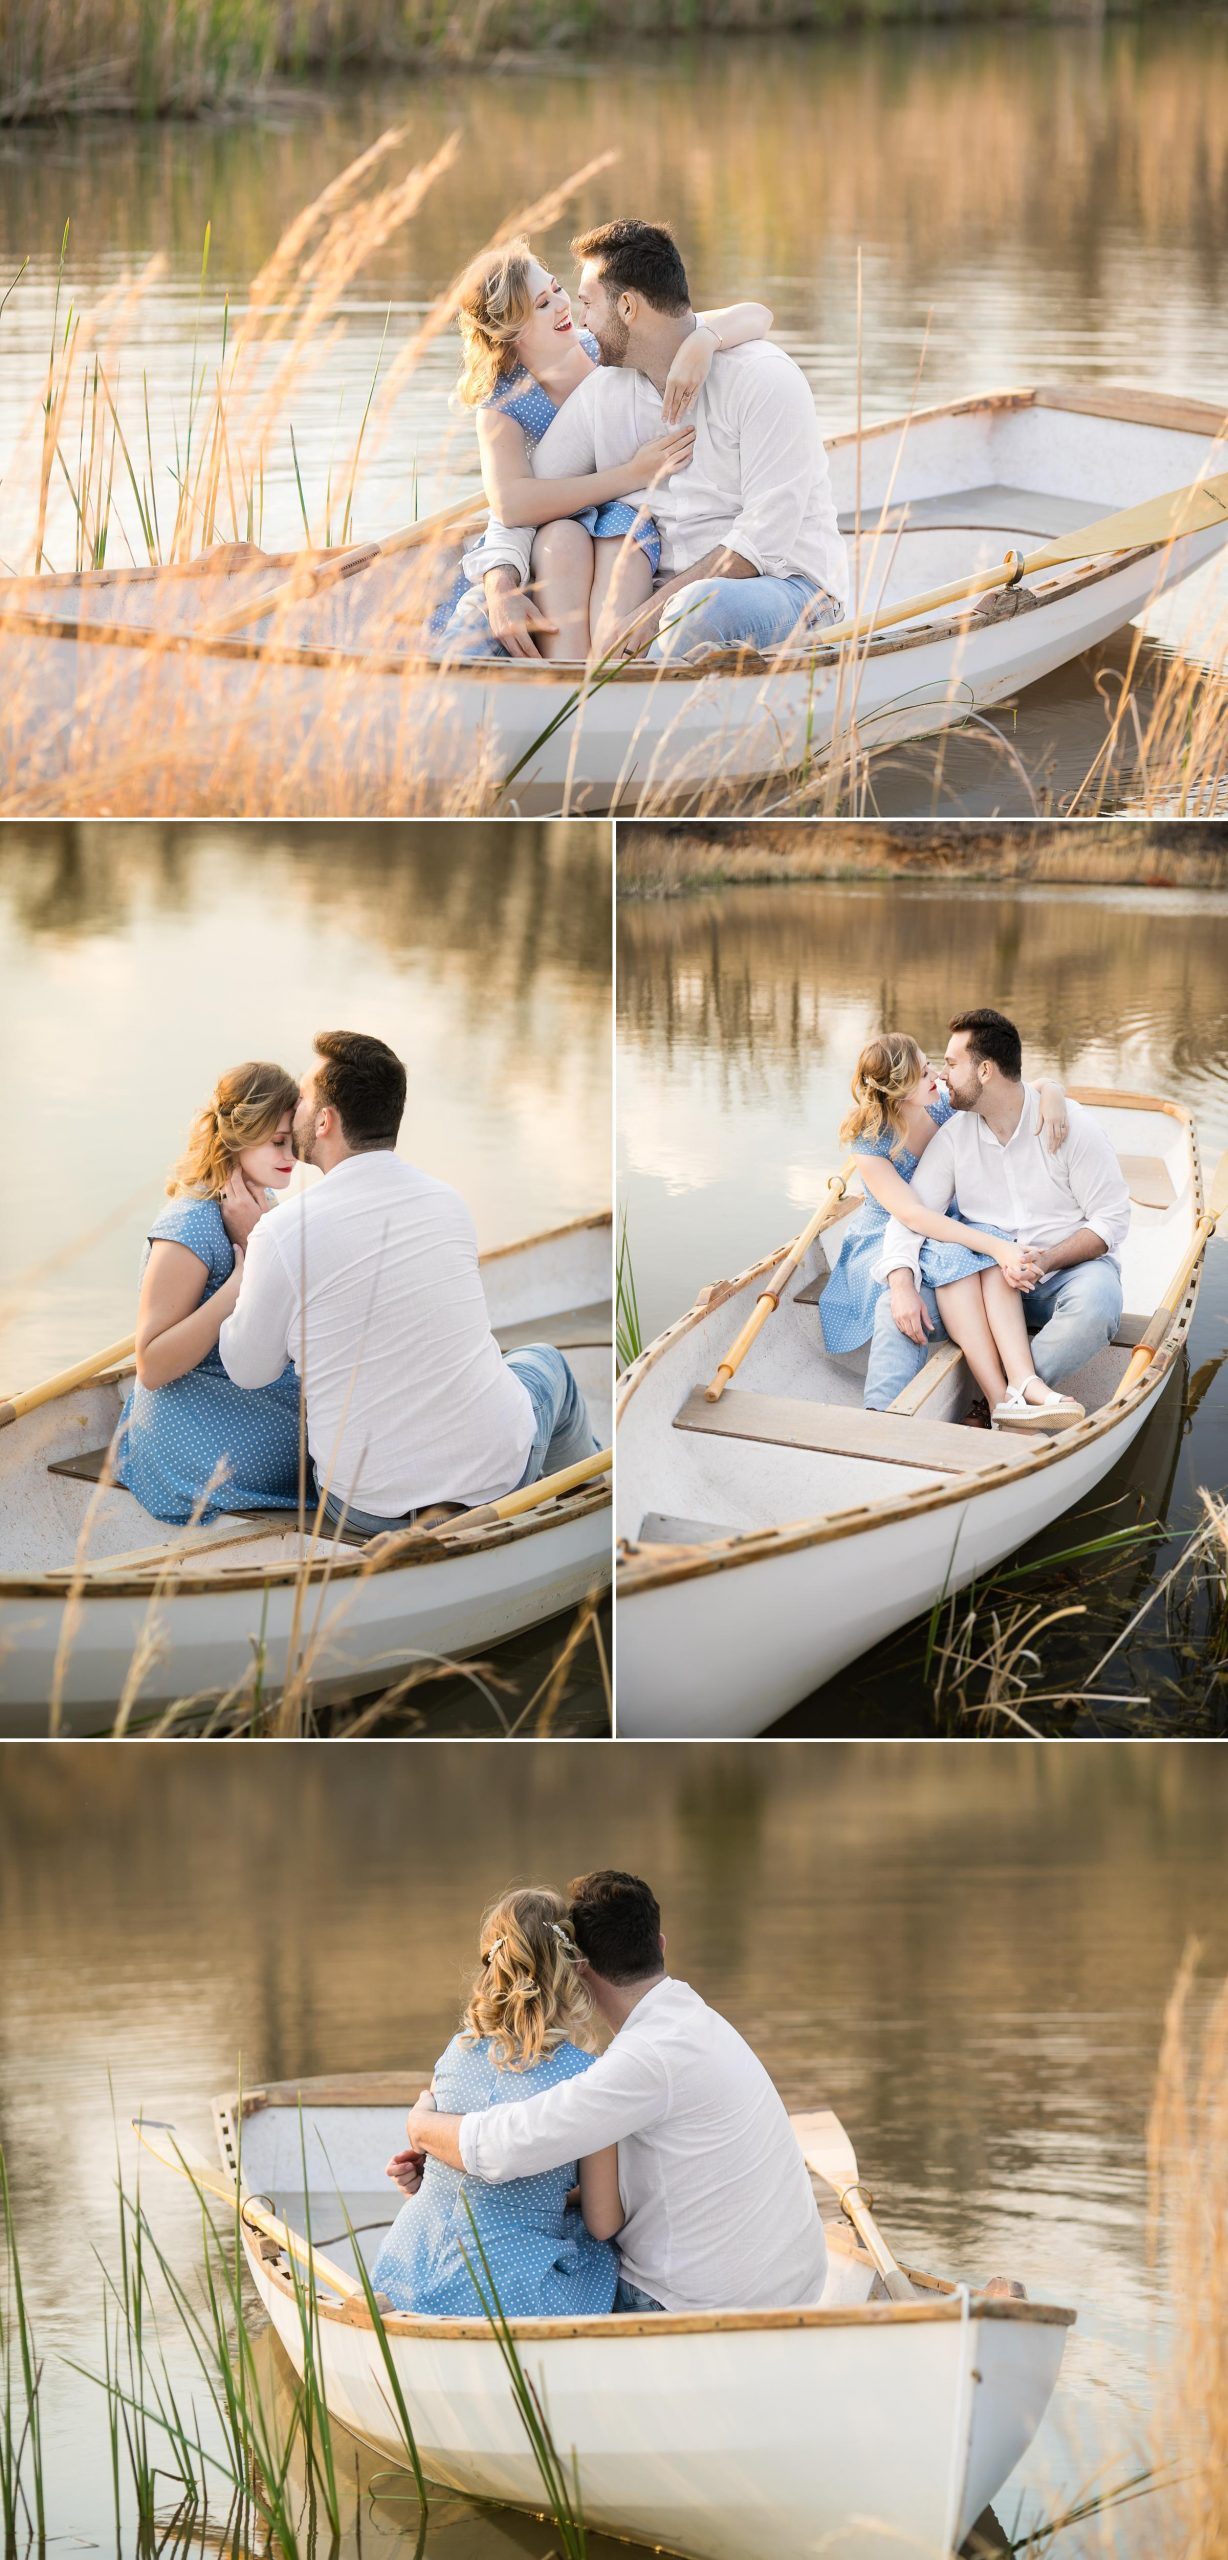 Tulsa Row boat notebook themed engagement session